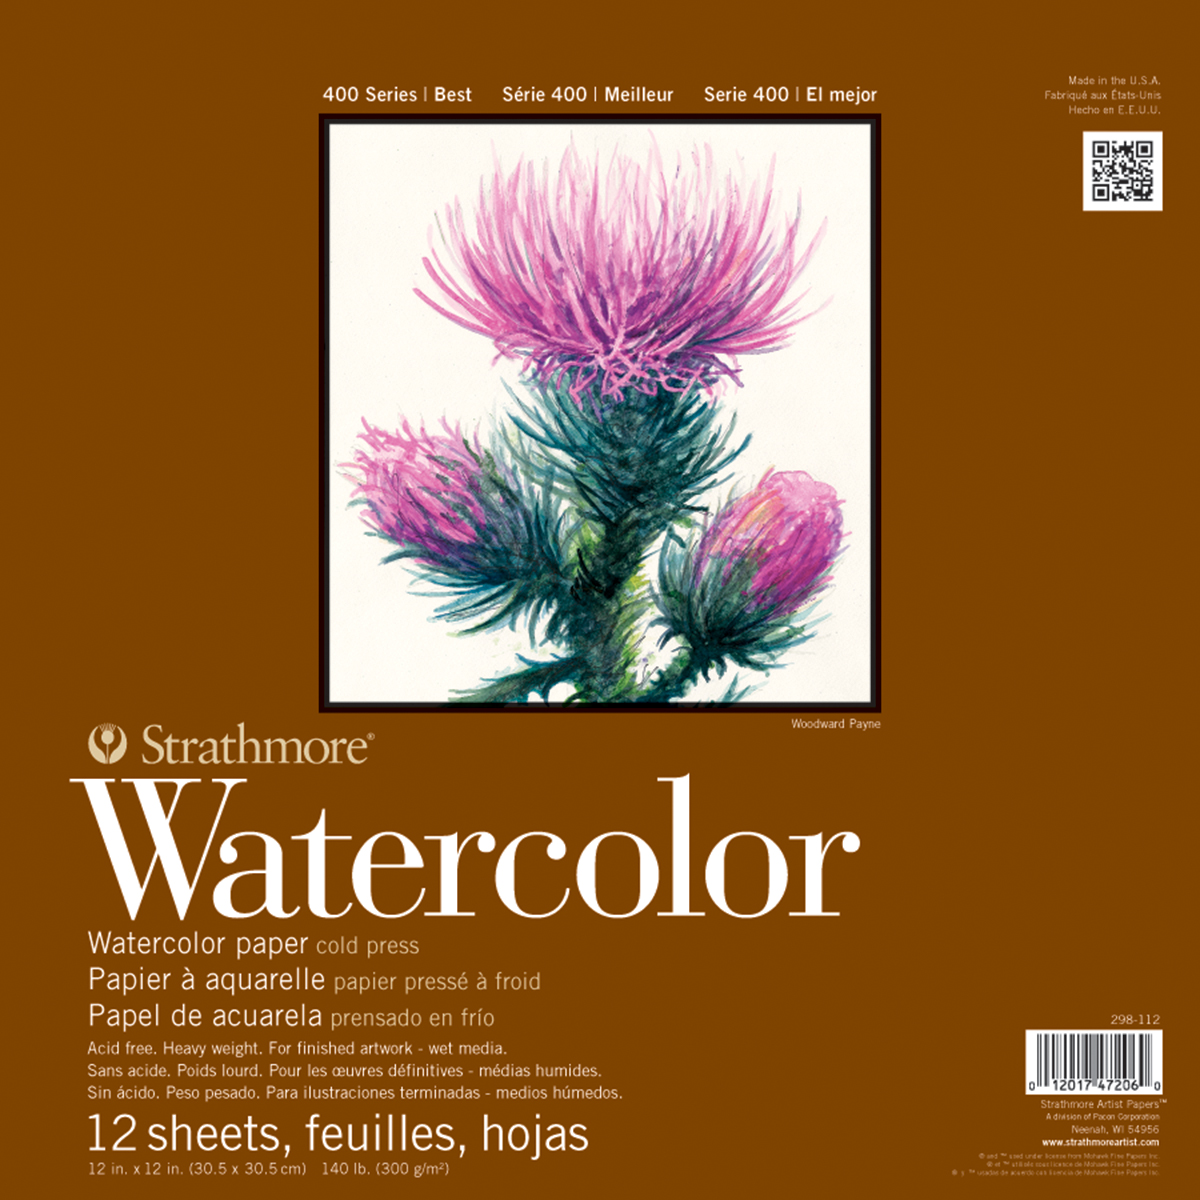 "Strathmore Watercolor Paper, Pad, 12"" x 12"", Cold Press, 140 lb, 12 Sheets"